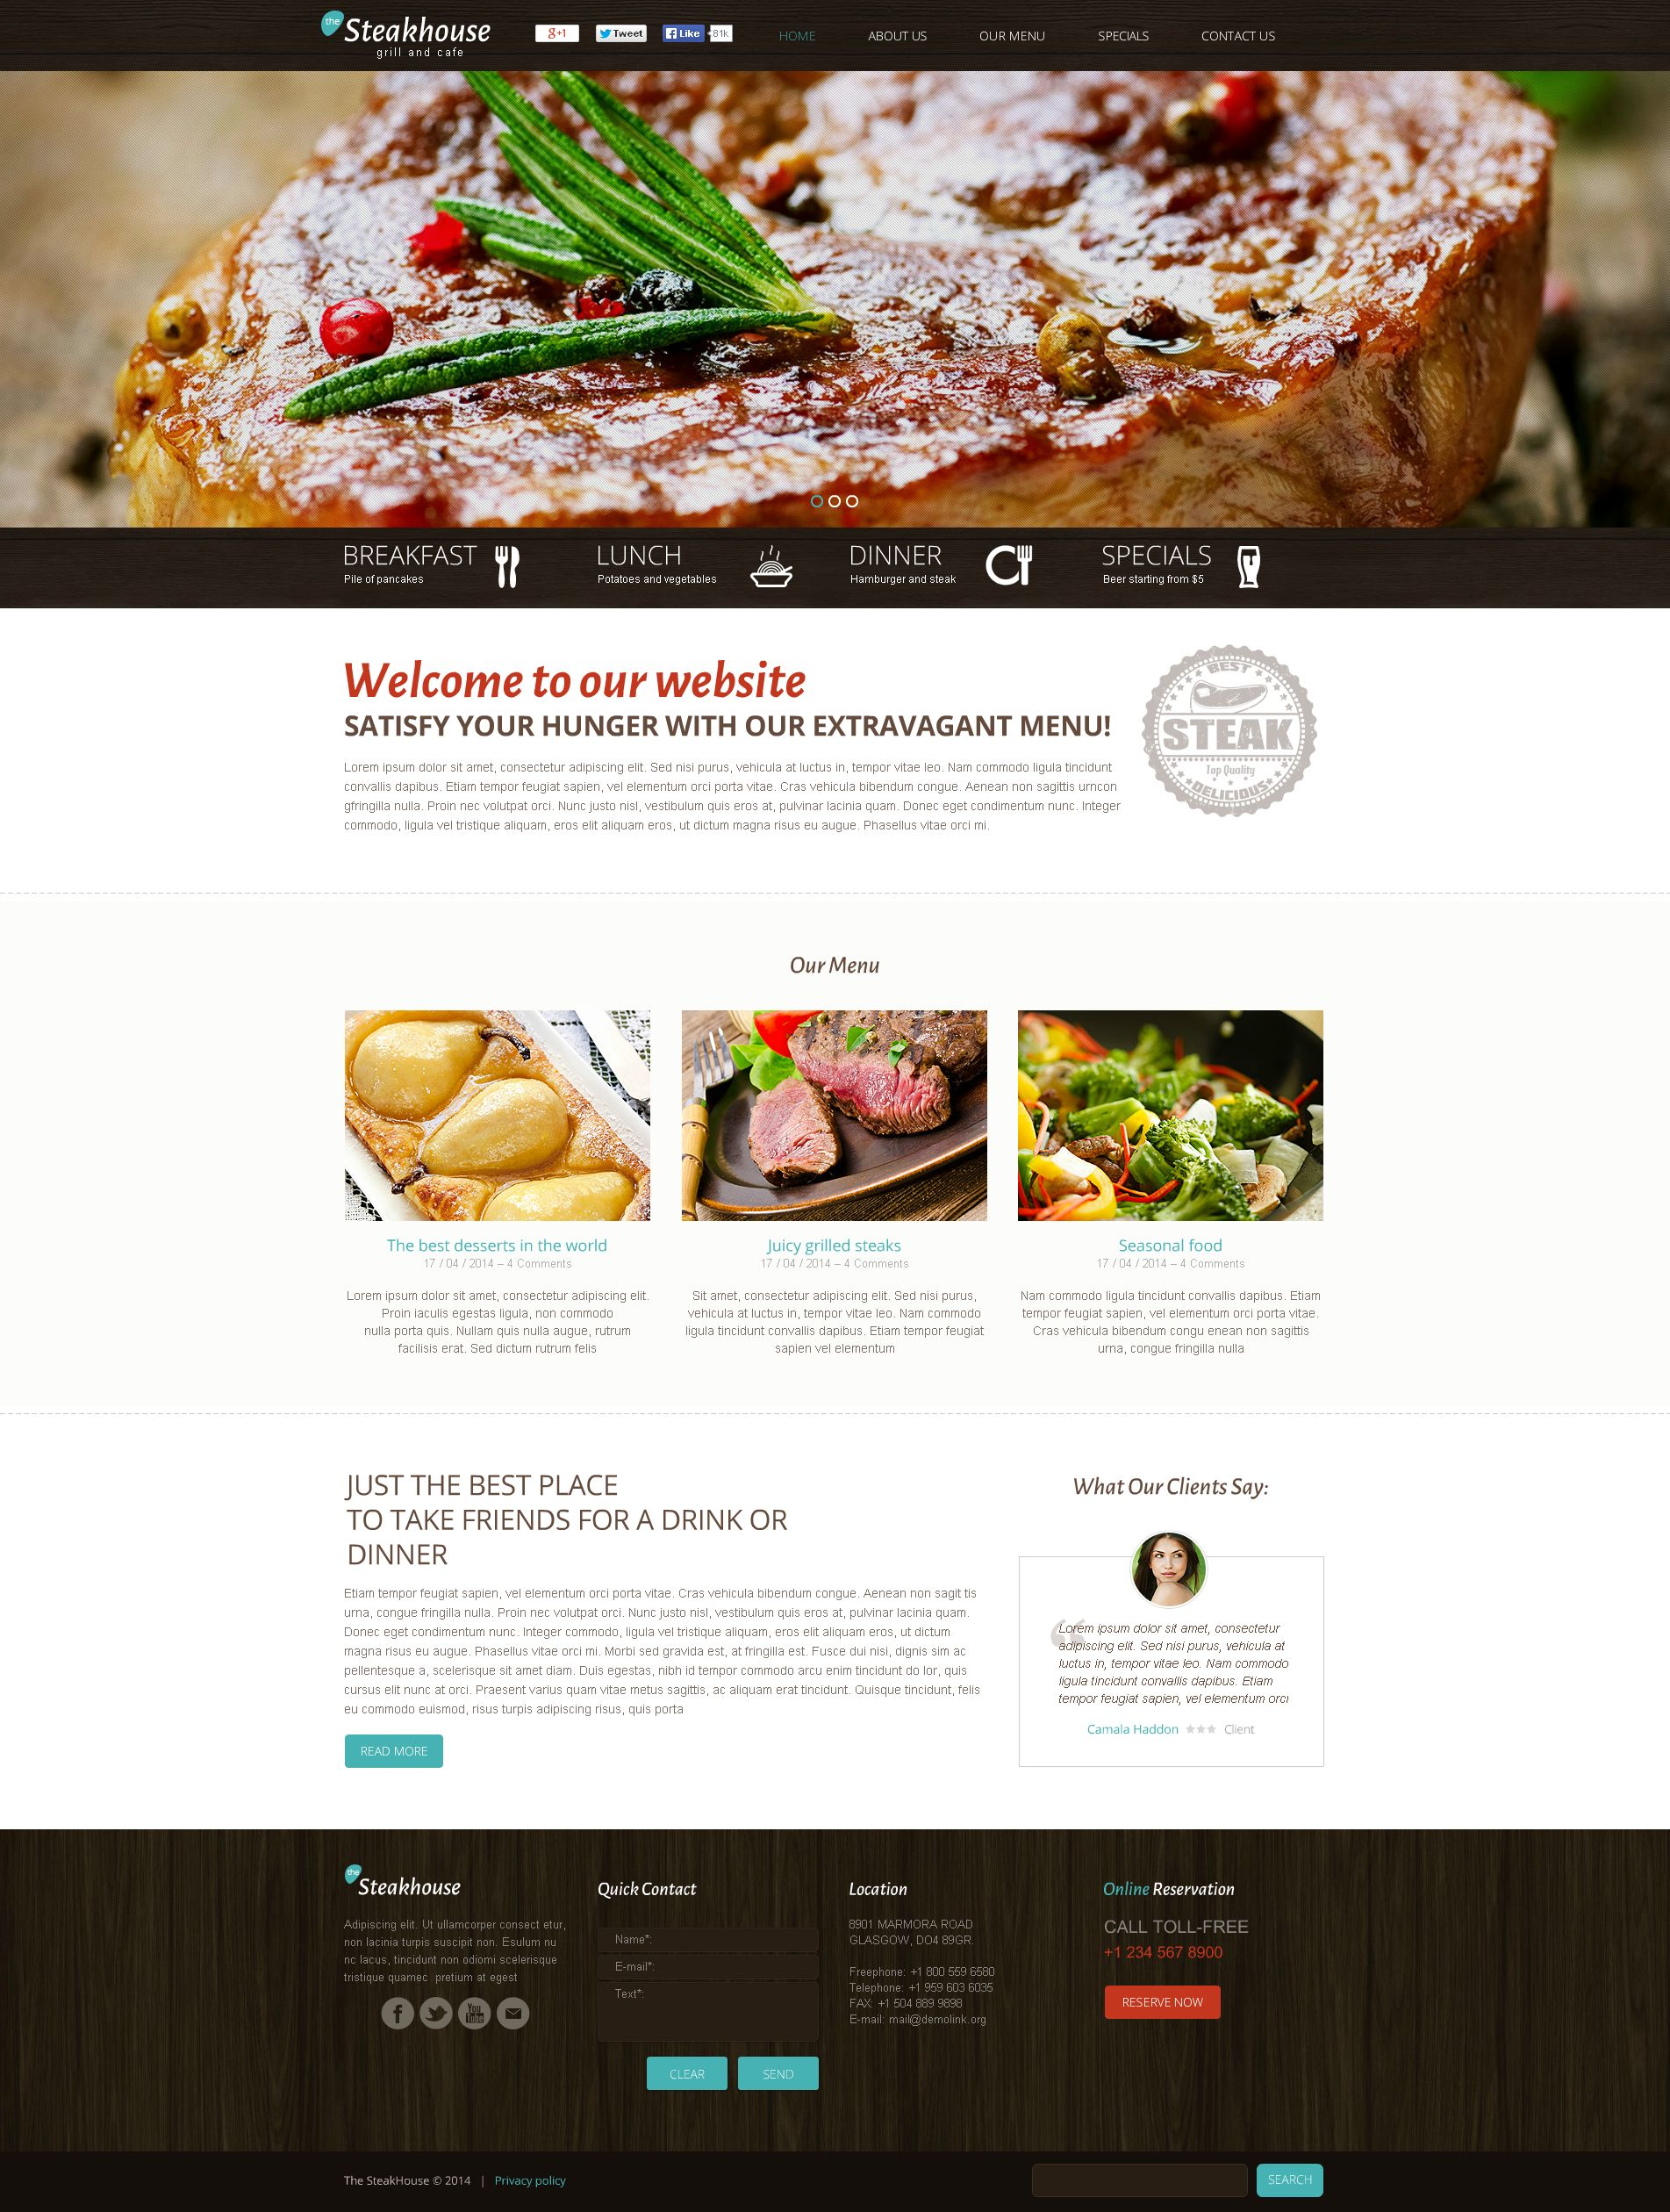 Premium Flash CMS Template over Steakhouse №50660 - screenshot